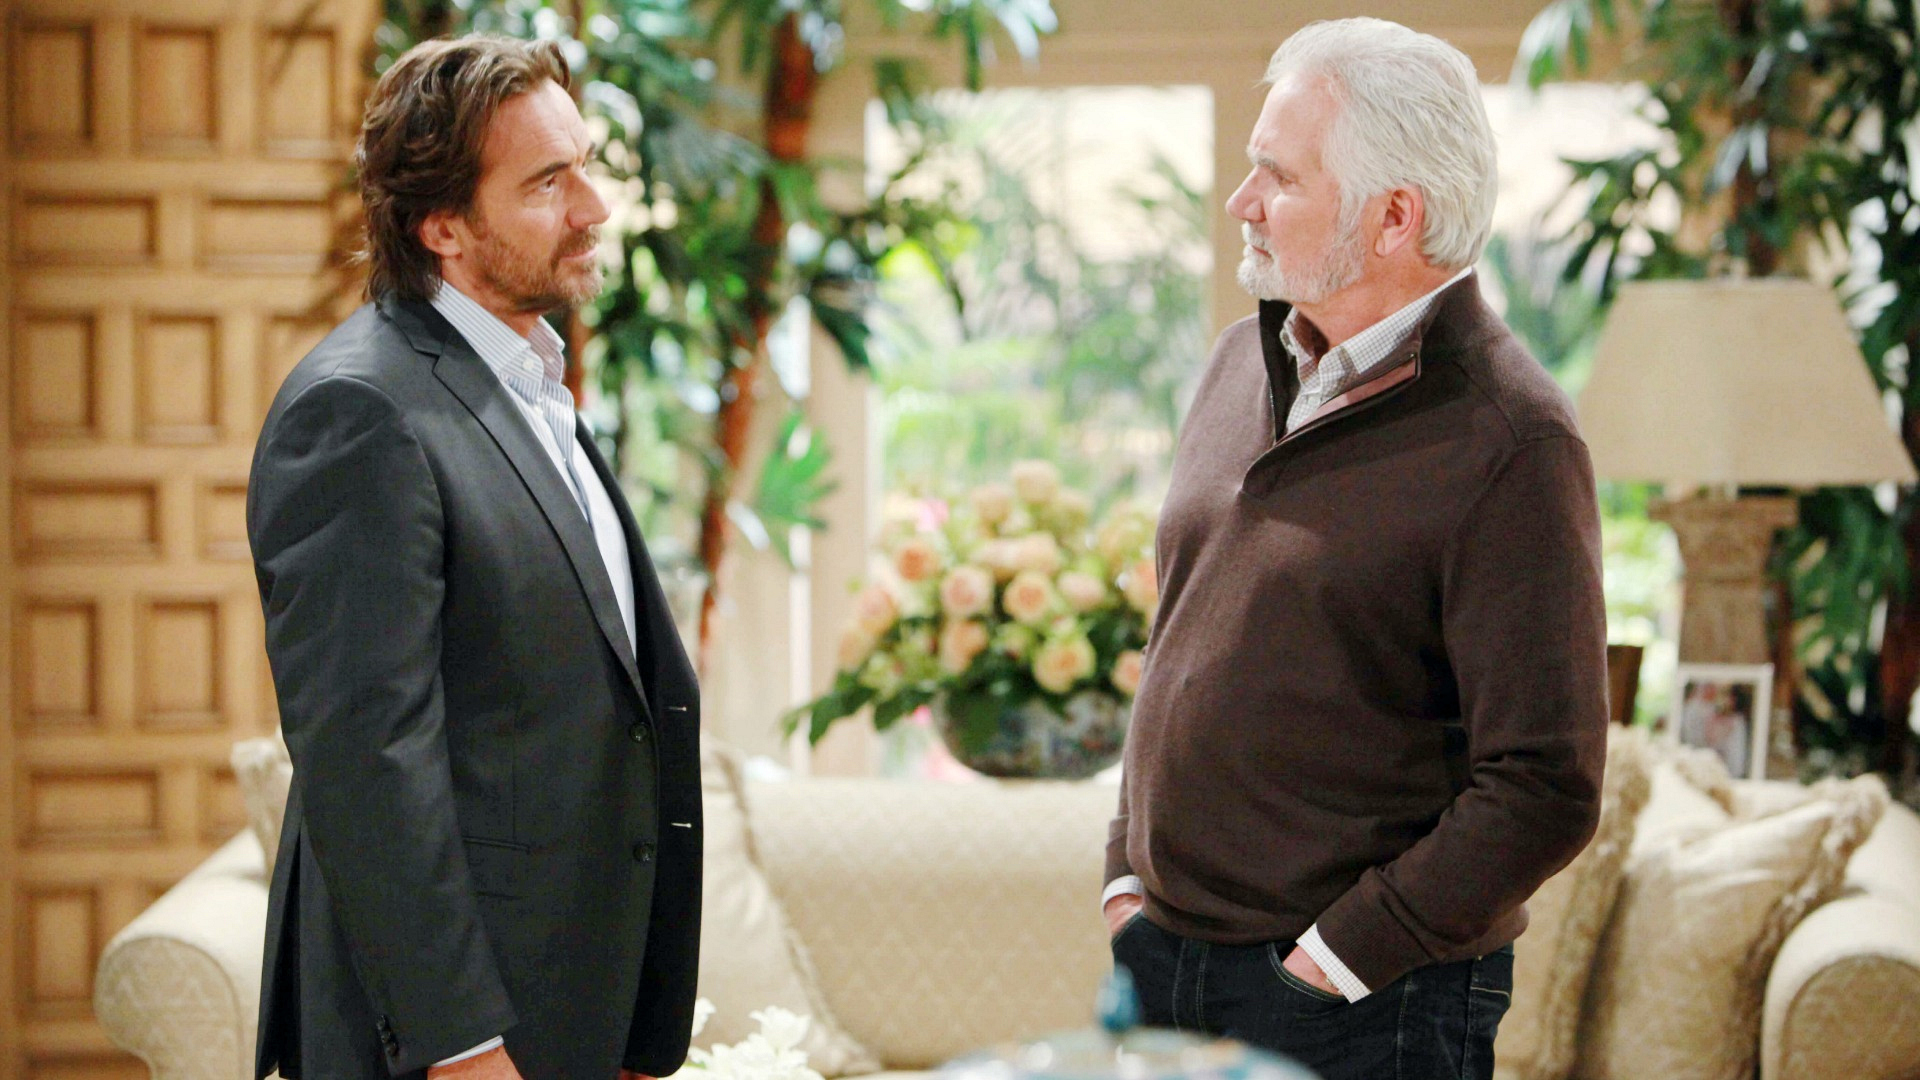 Ridge pays Eric a visit in an attempt to get him to change his mind about the Forrester CEO position.